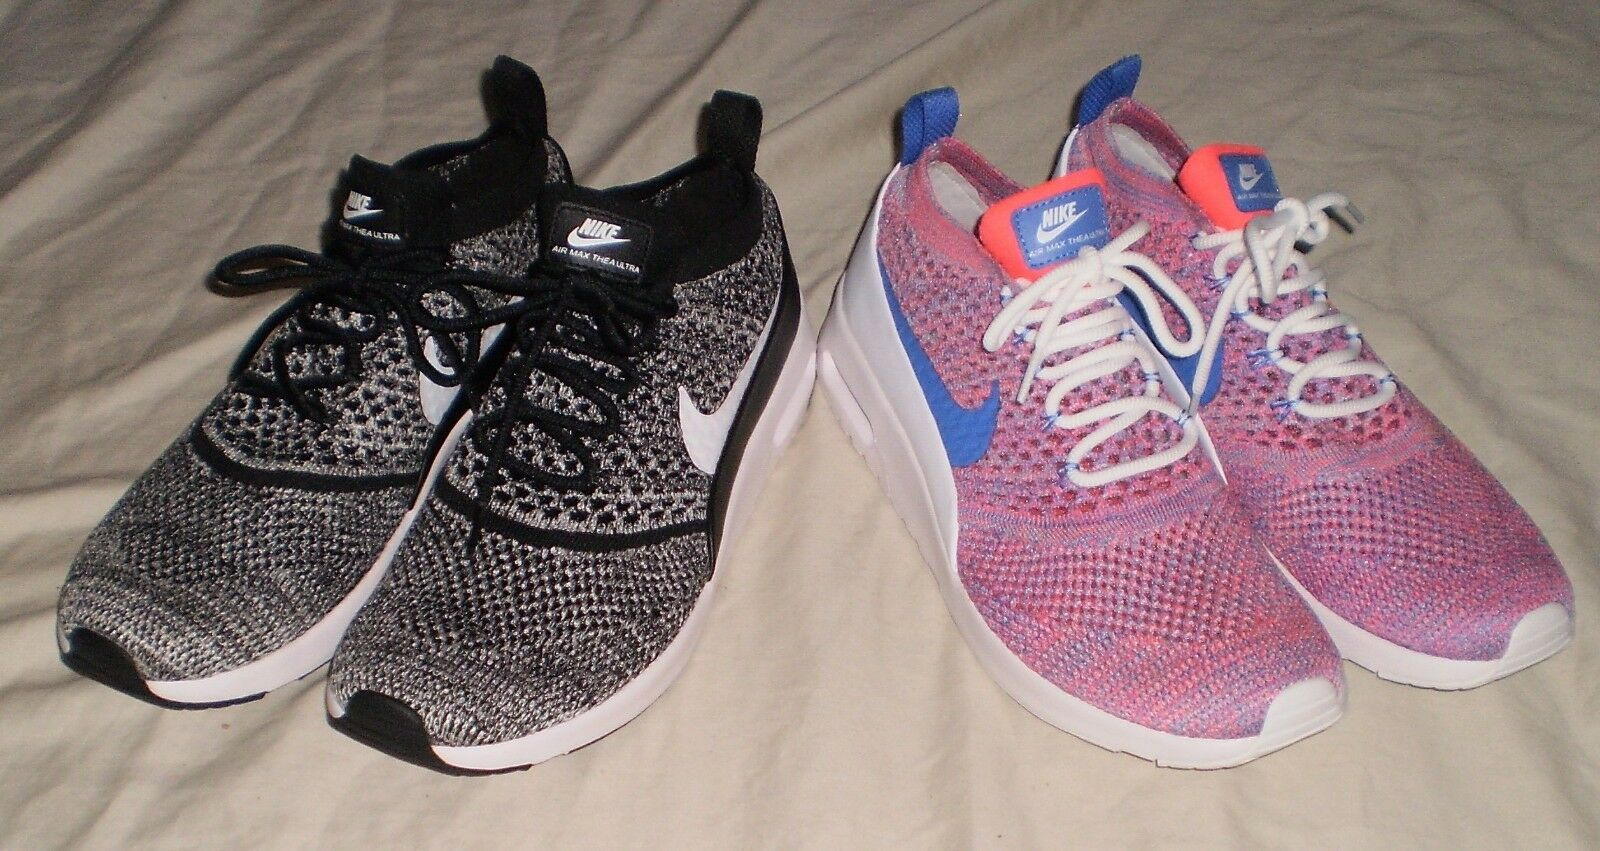 WOMENS NIKE AIR MAX THEA ULTRA FLYKNIT RUNNING SHOES SIZE 12 White/Medium Blue-Racer Pink,Black/White